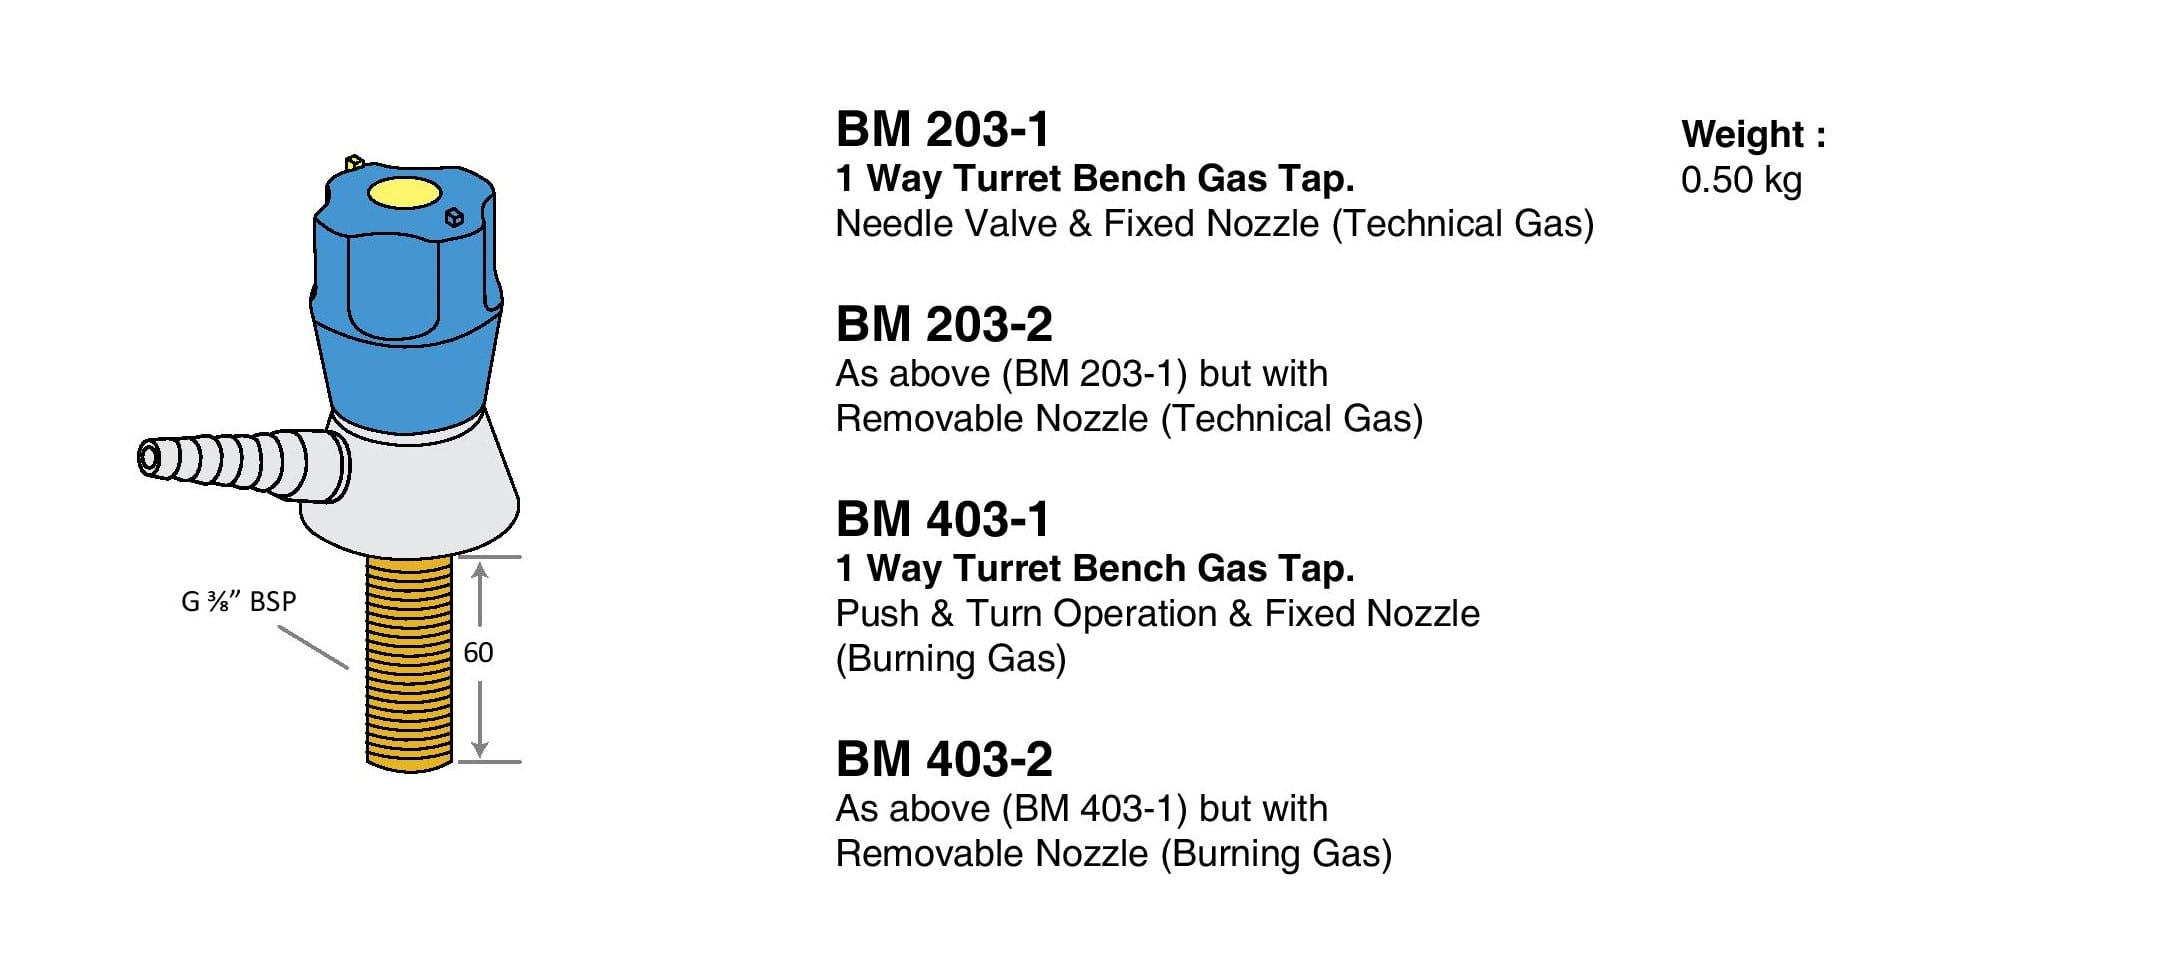 1 Way Turret Bench Gas Tap Drawings